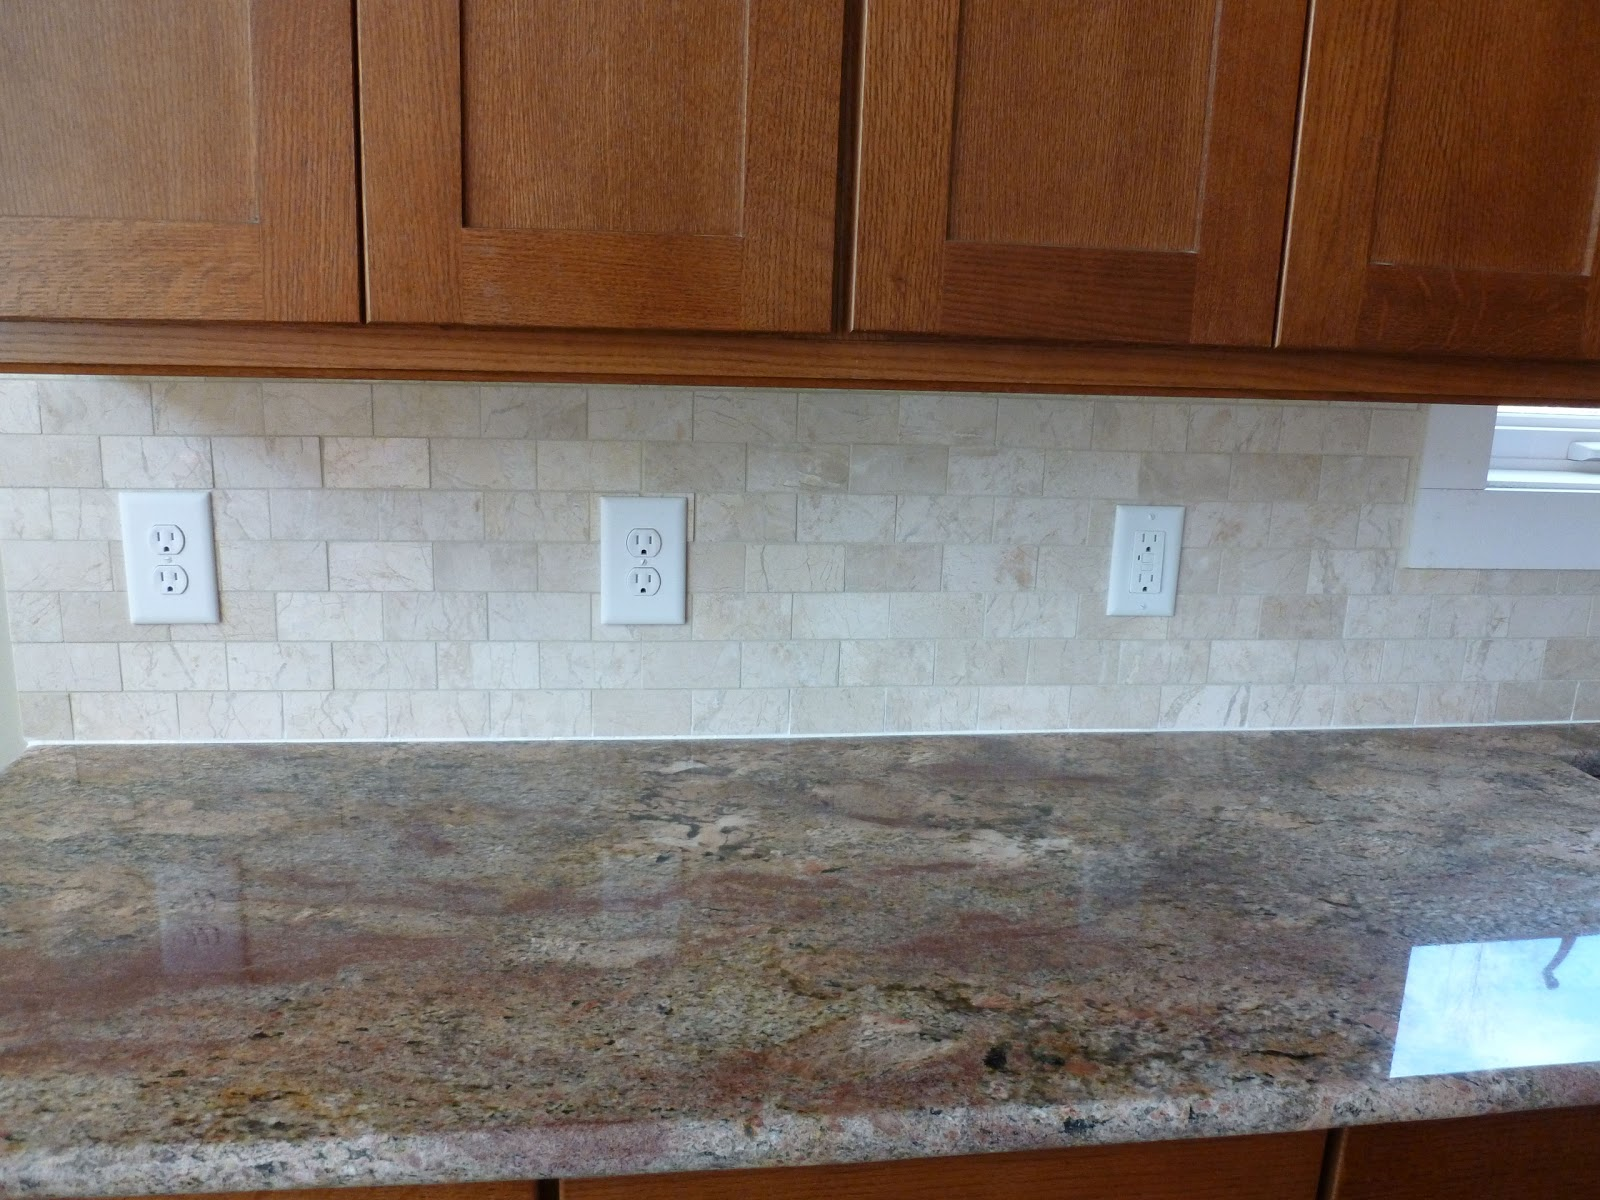 Bob and flora 39 s new house Backsplash tile for kitchen